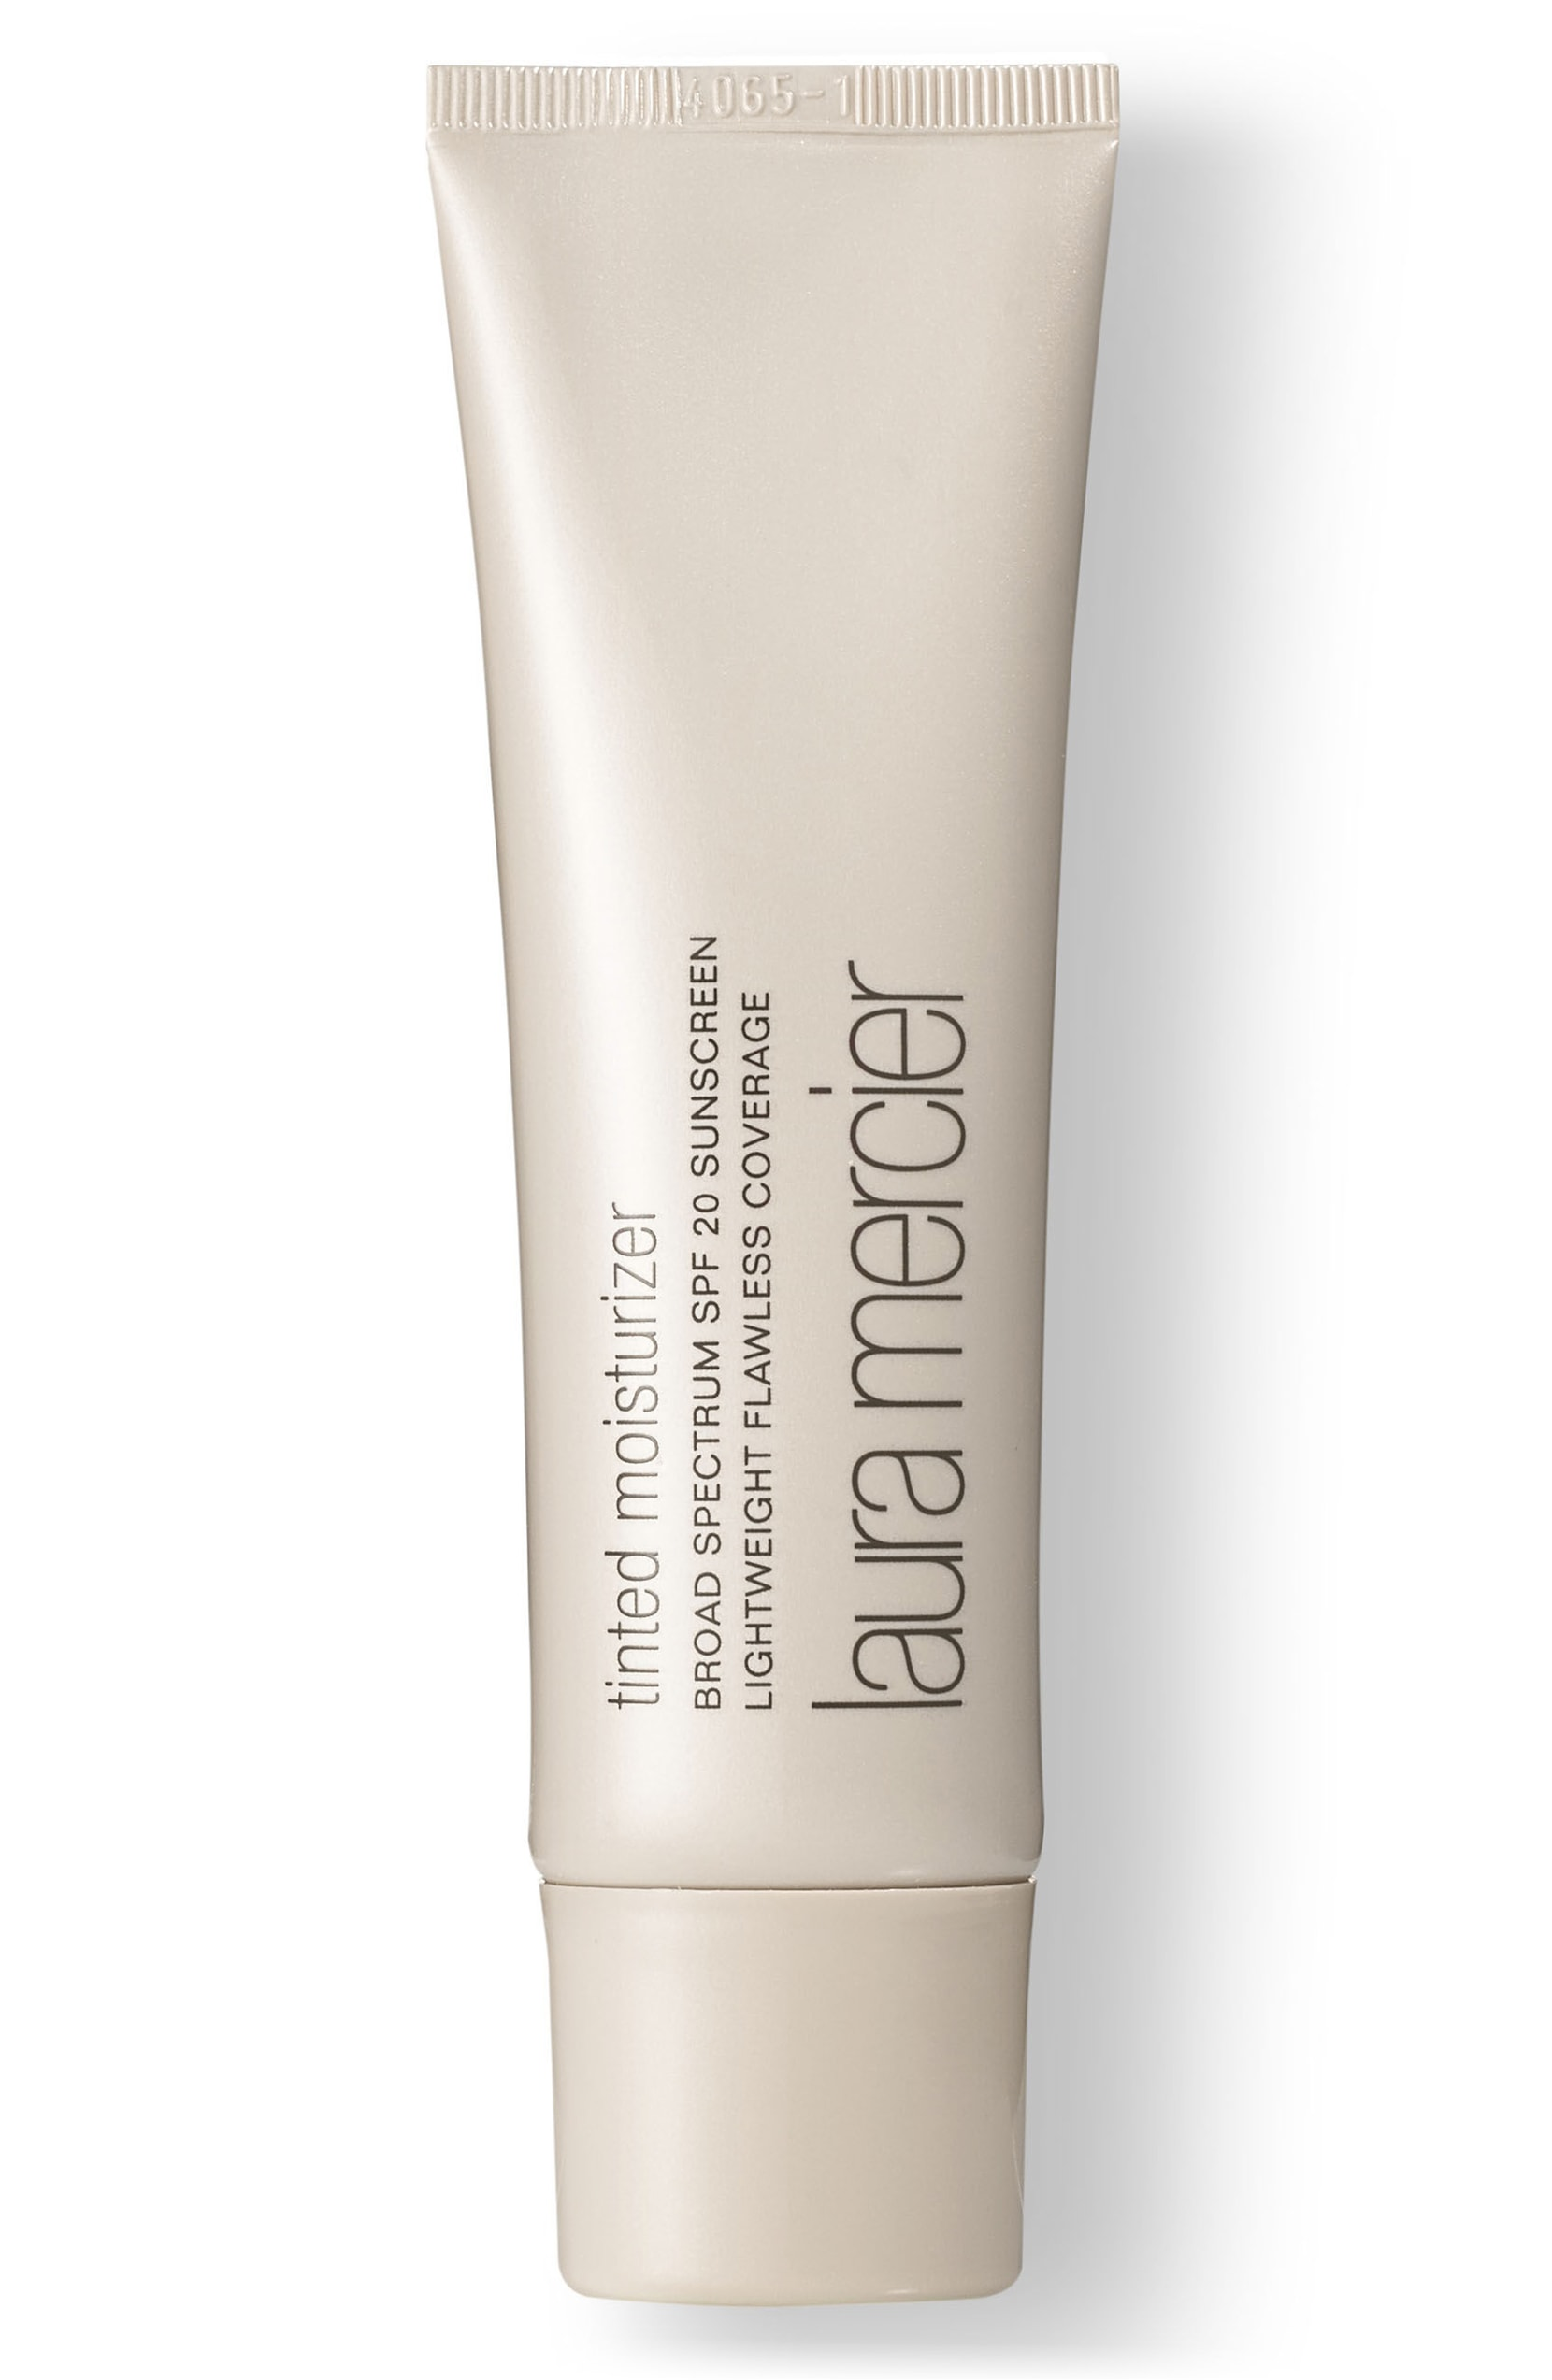 Multi Use Face Product - Used as light coverage foundation, spf, and moisturizer in one